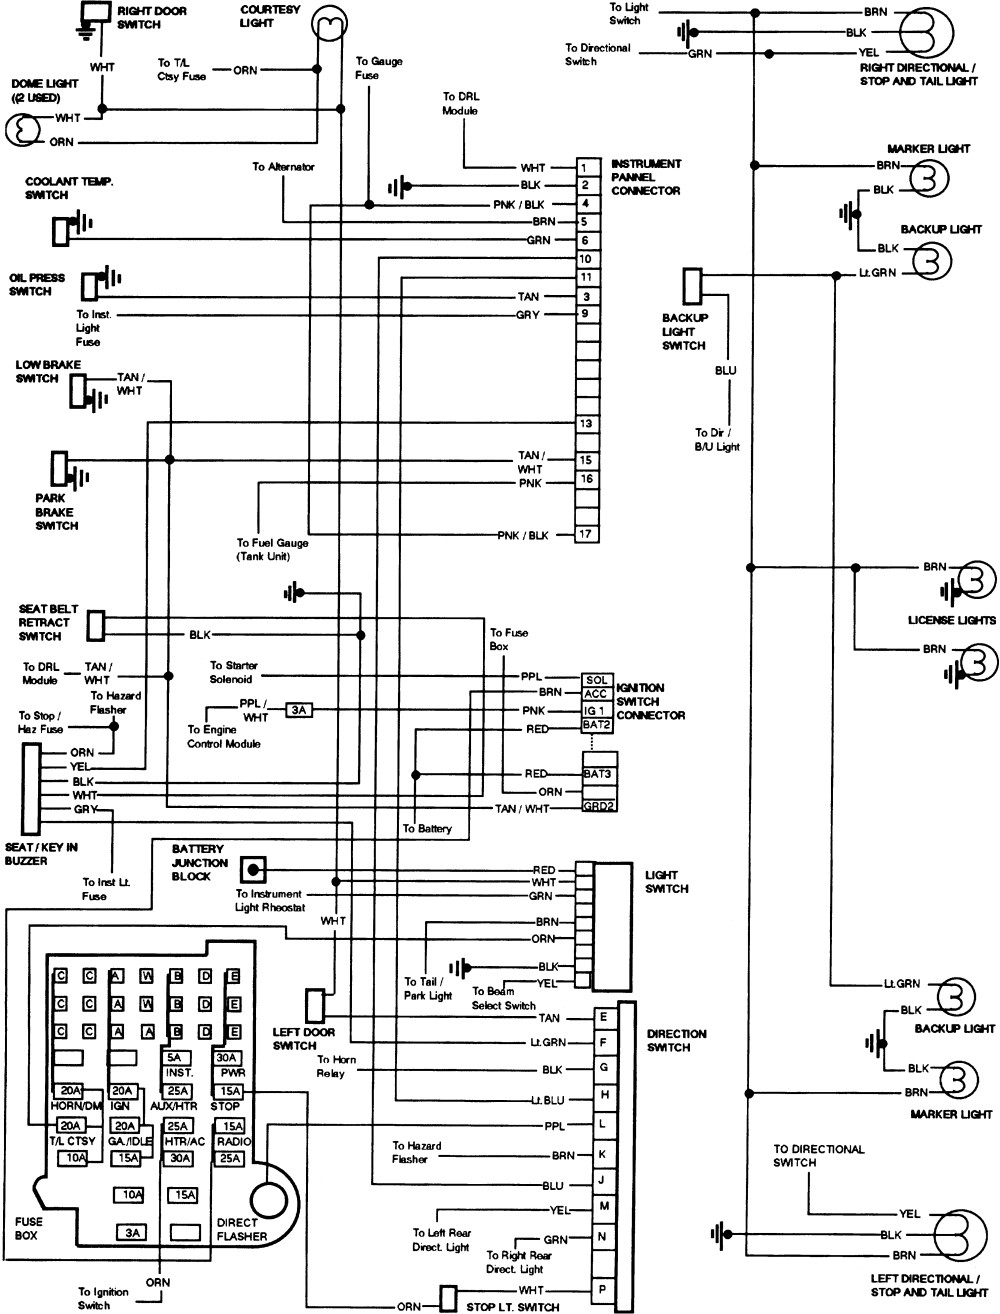 Diagram Diagram Gmc Truck Wiring Diagrams Free 2009 Full Version